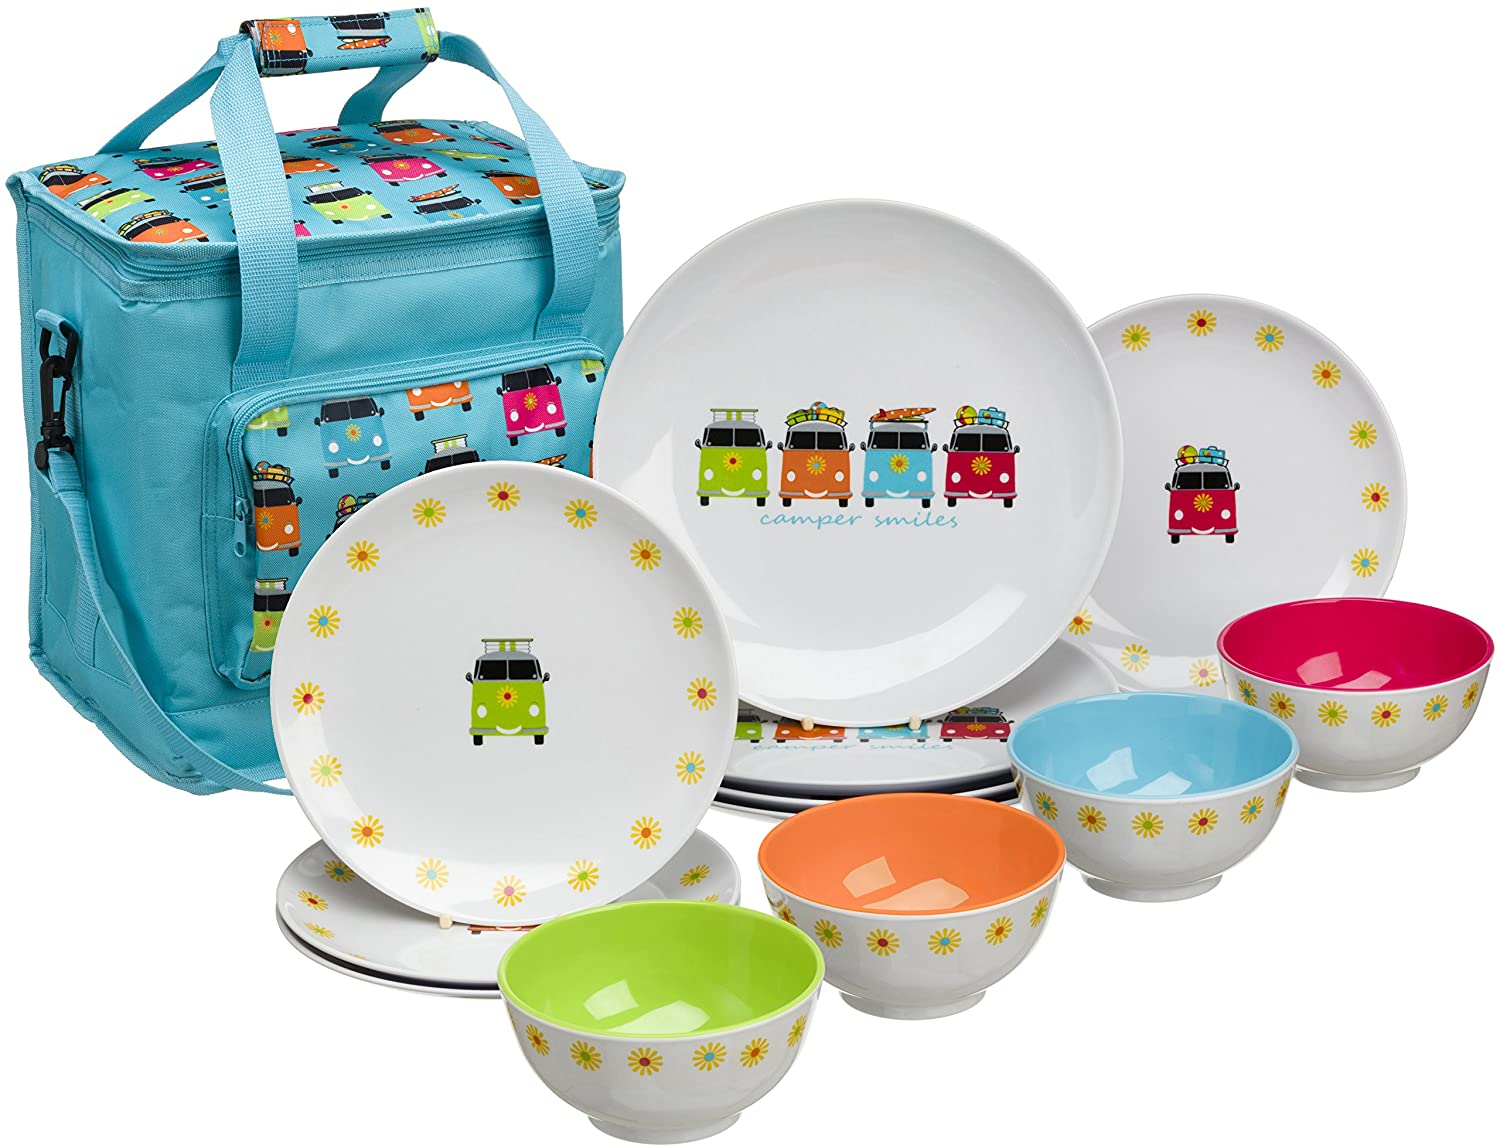 Flamefield CAM0113 Camper Smiles 12 Piece Melamine Dining Set with Cooler Bag, Multicolour